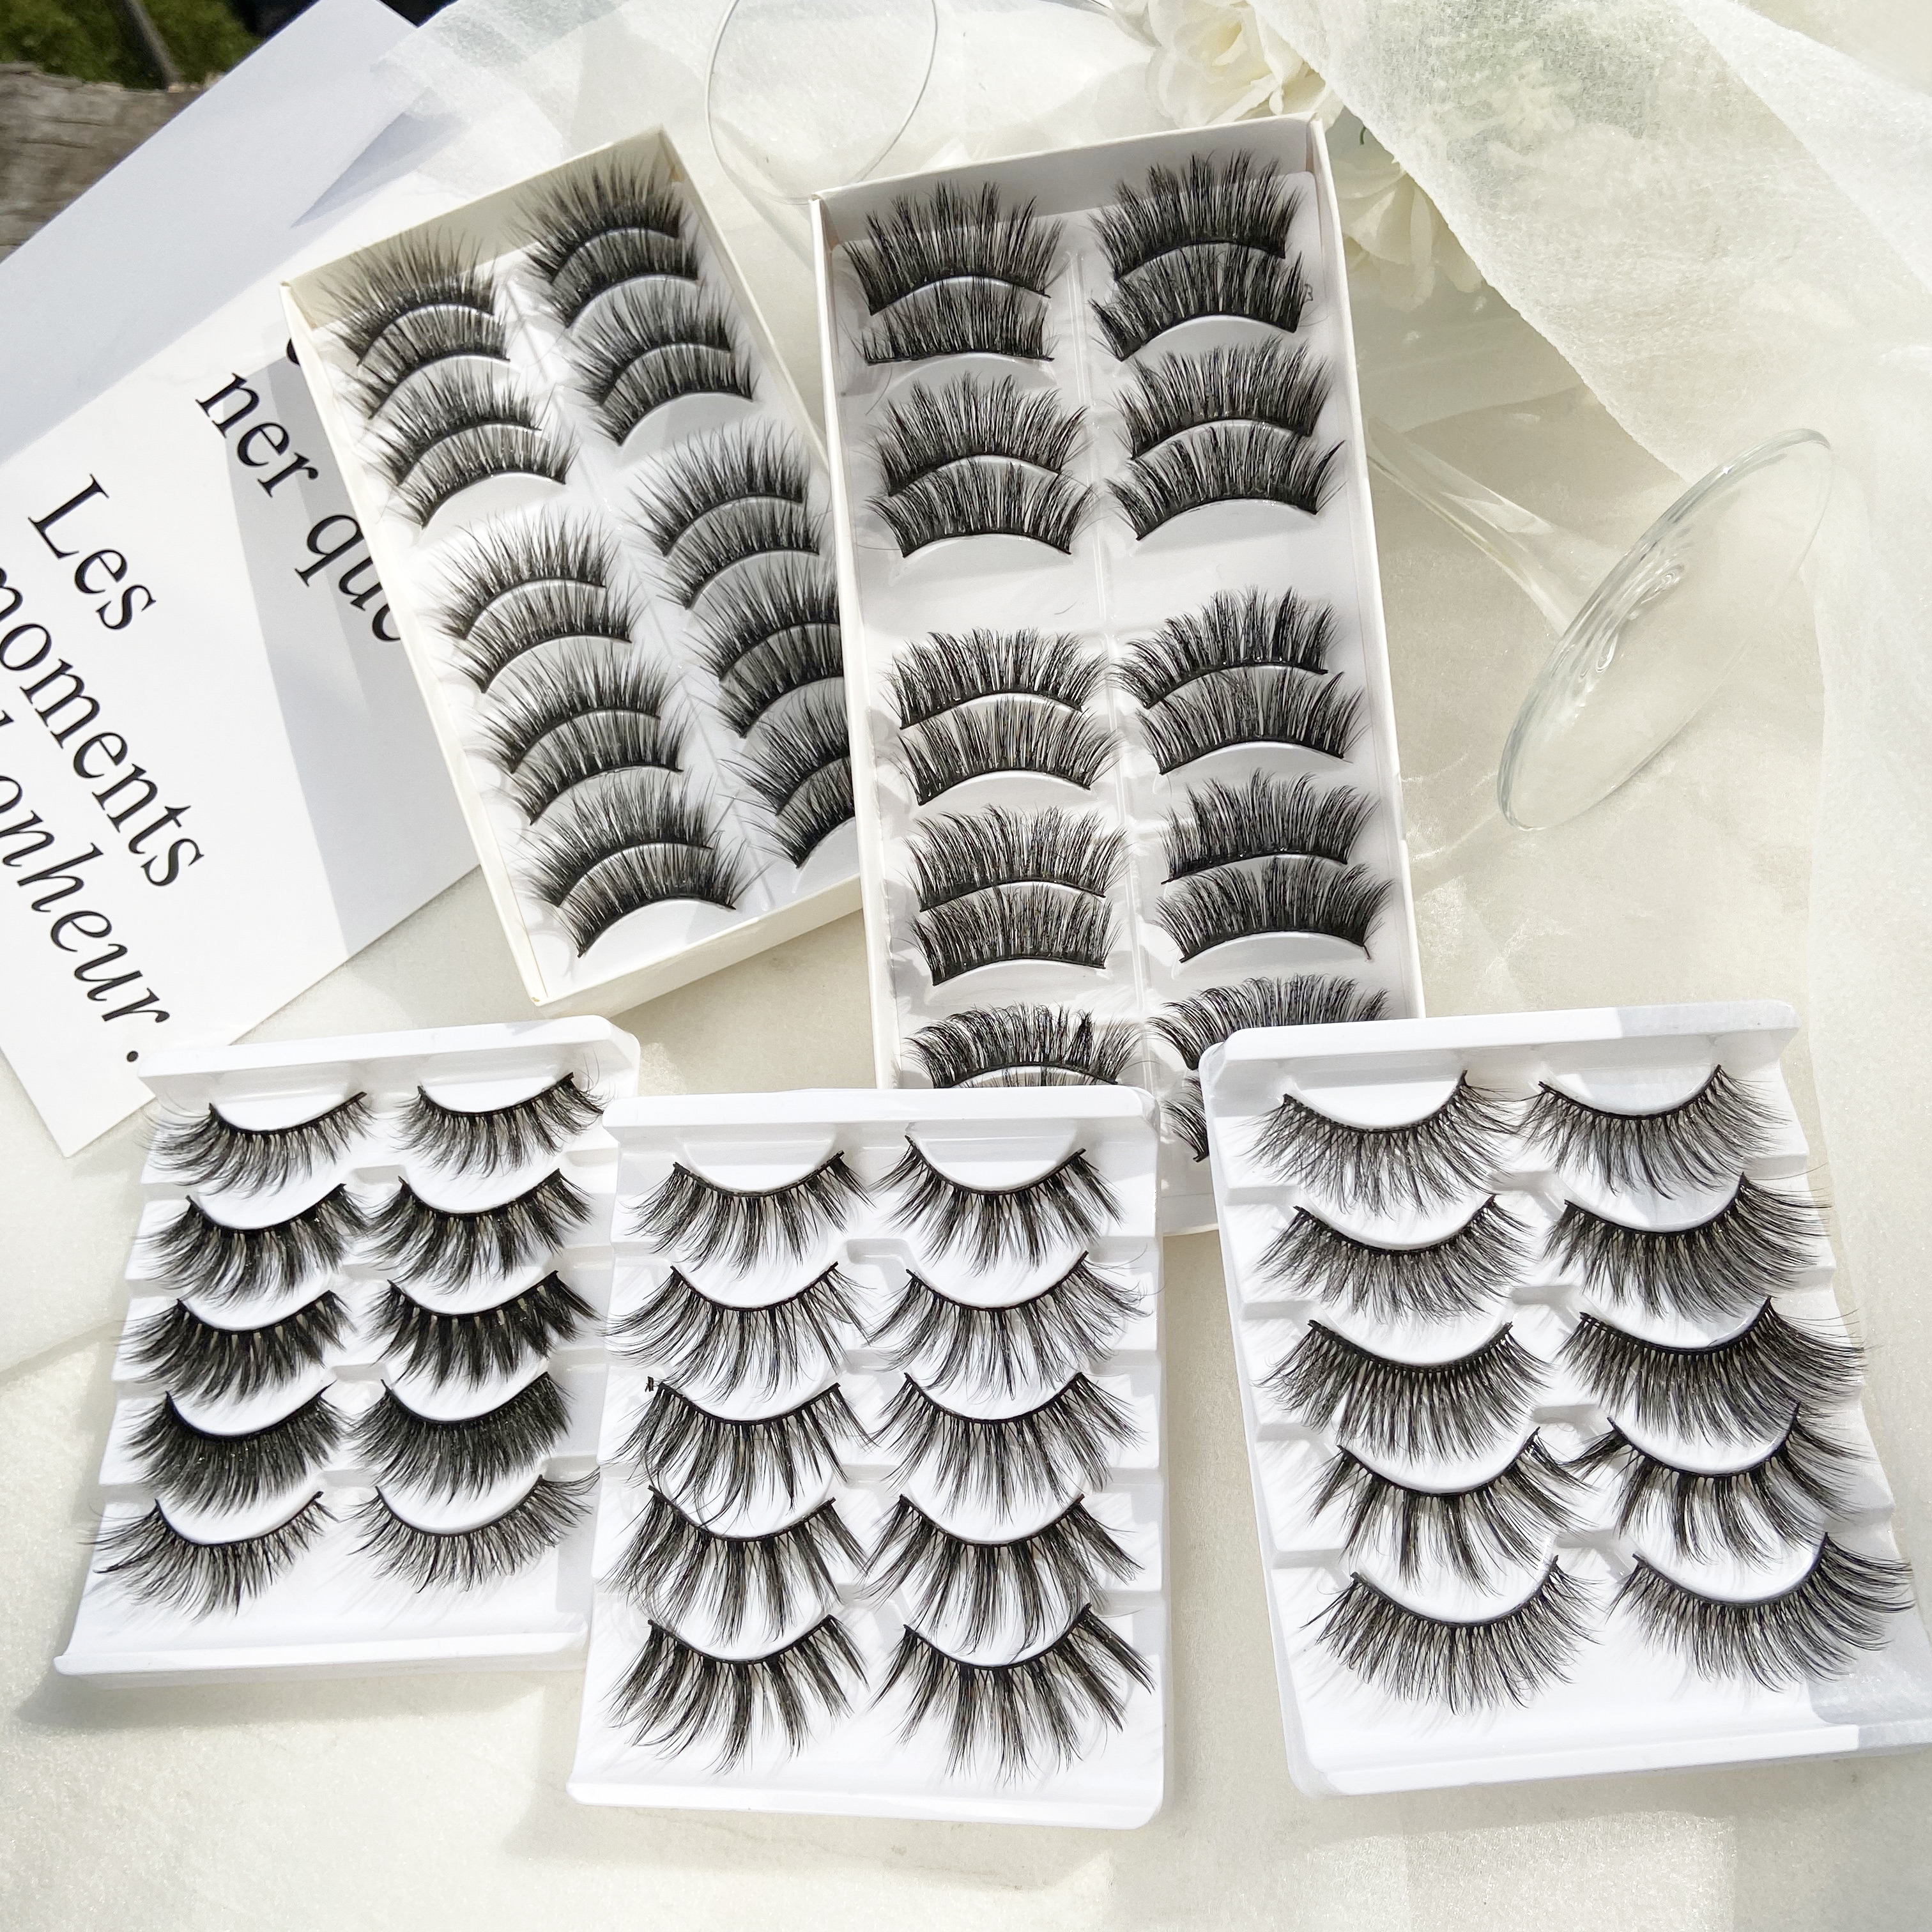 5/10 Pairs Thick 3D Mink Eye Lashes For Woman Drop Shipping Black 15-25mm Long Eyelash Cheap False Eyelashes 2020 New Lashes